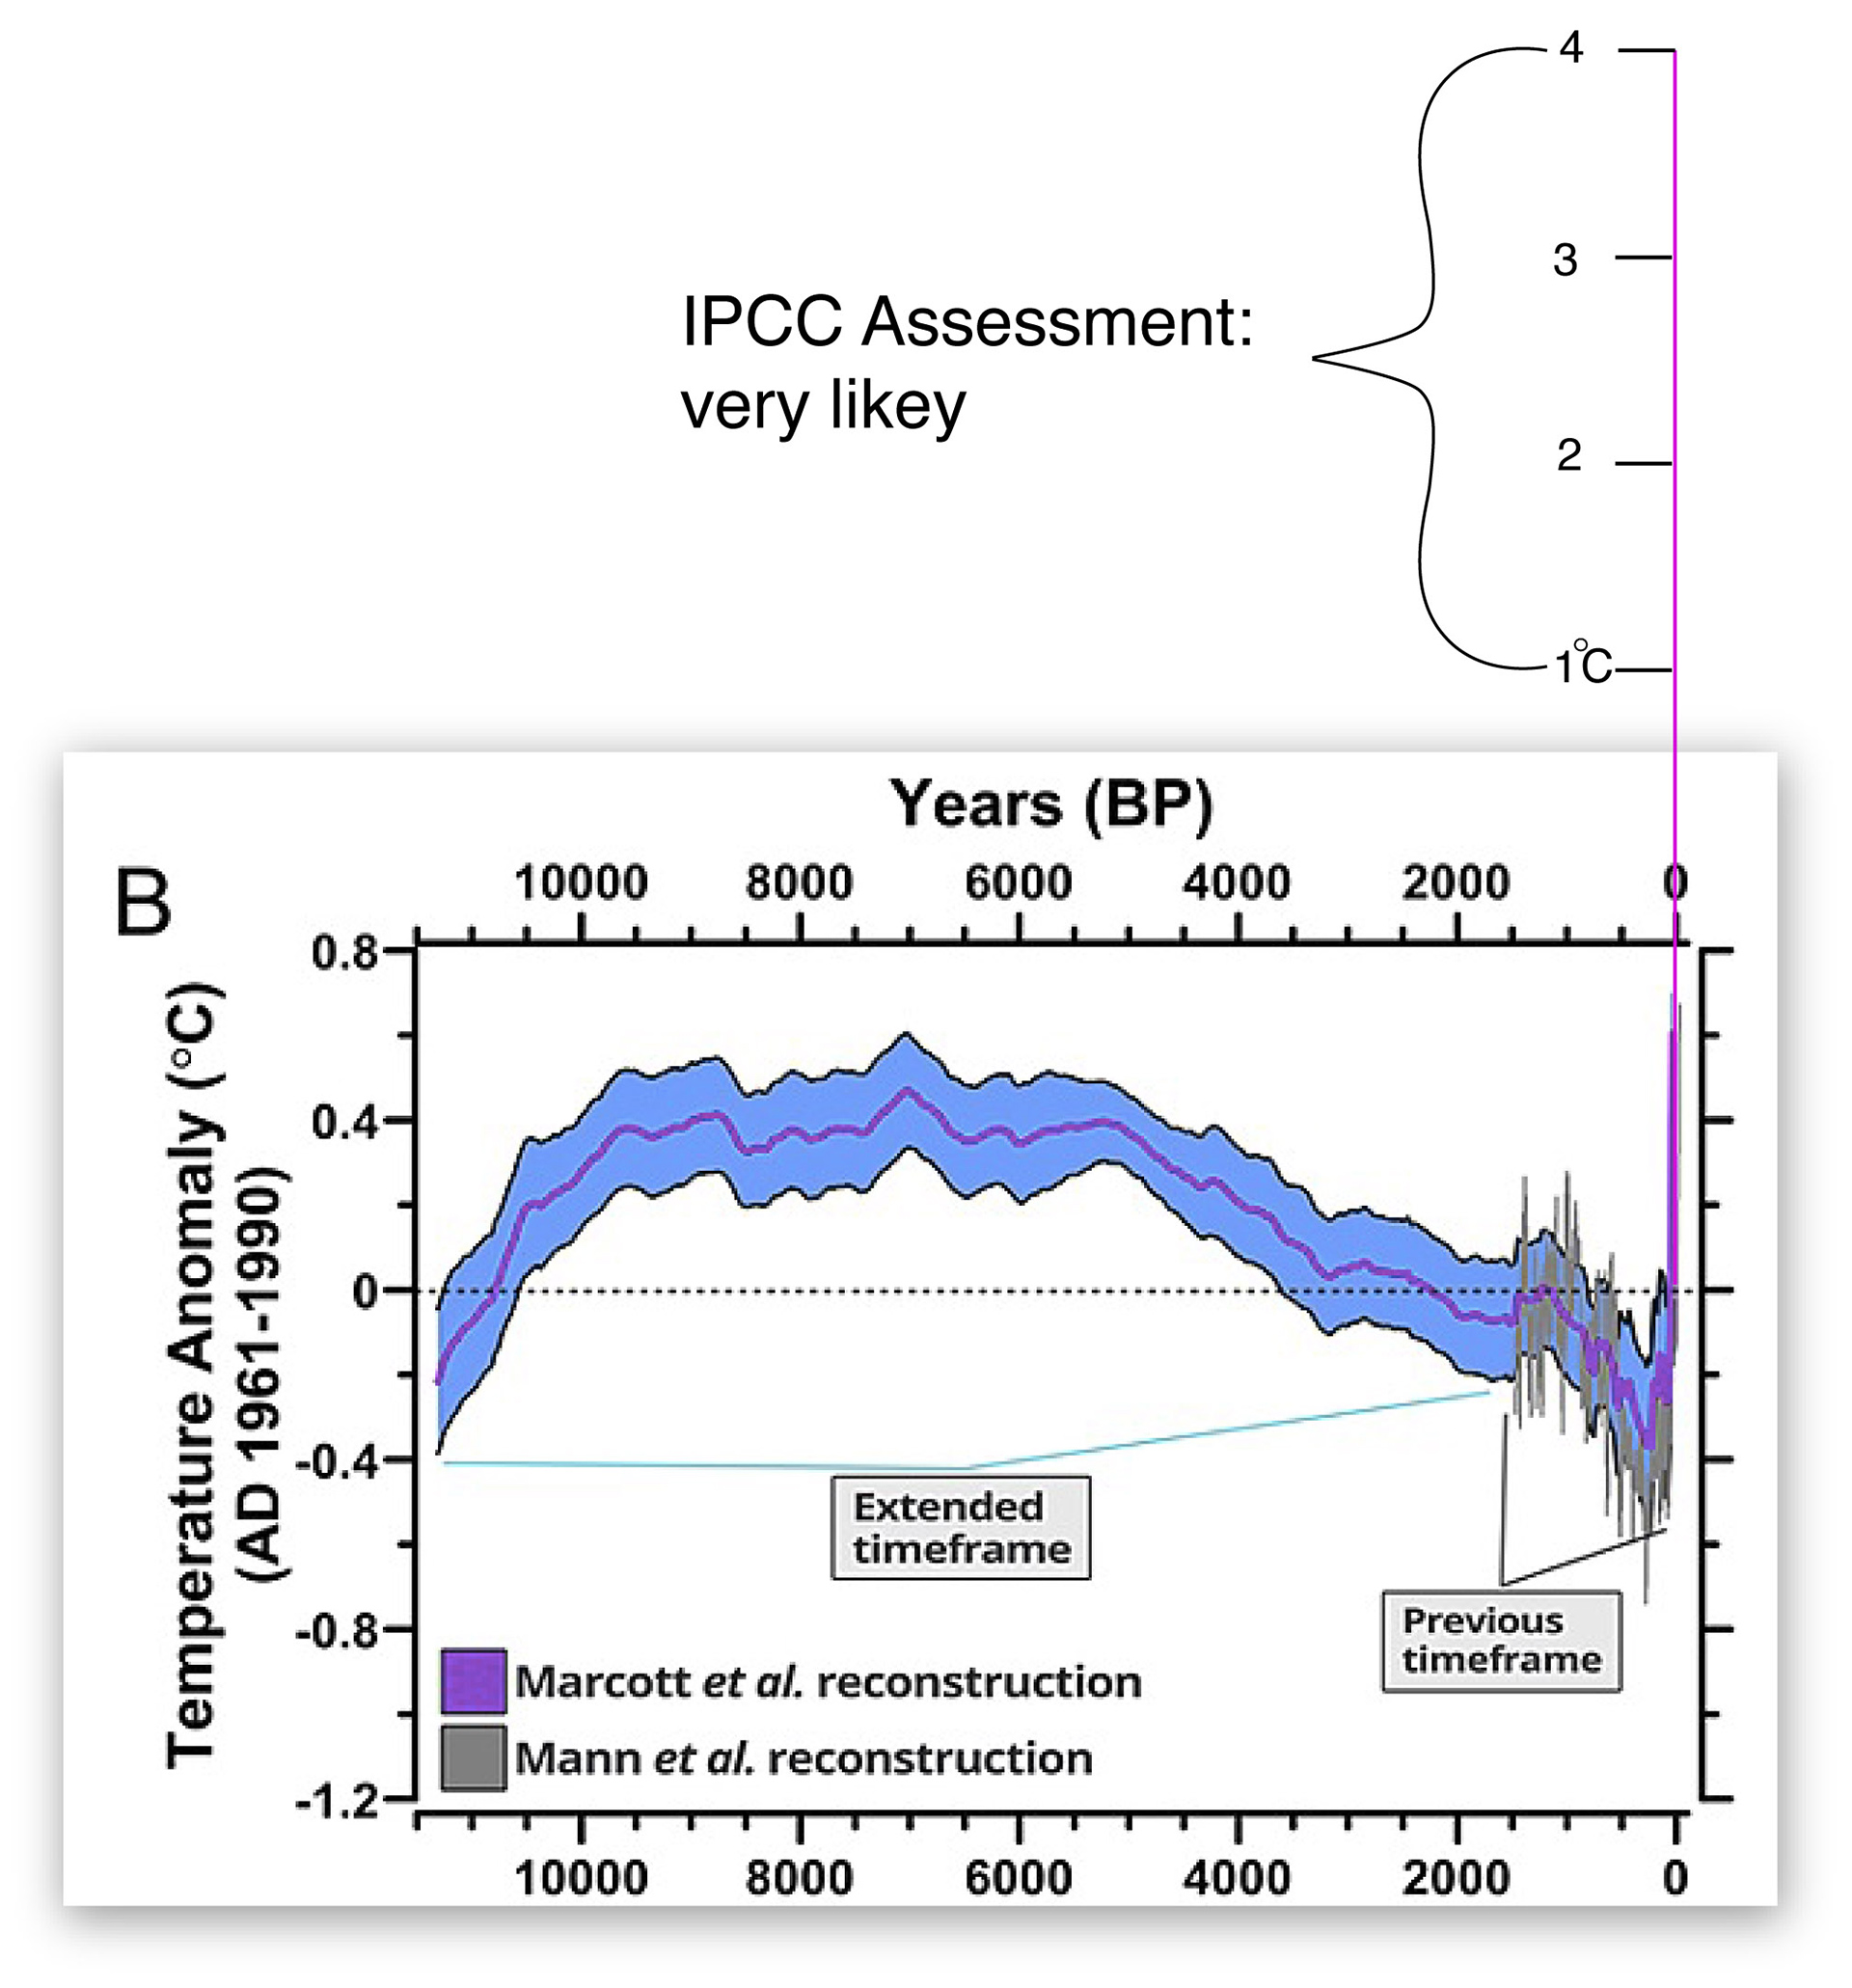 FIGURE 1.  Temperature Anomoly. The temperature changes we expect to happen in the 21th century will put our planet into a state completely foreign to human civilization with a future full of hidden surprises. See also Endnote 3.